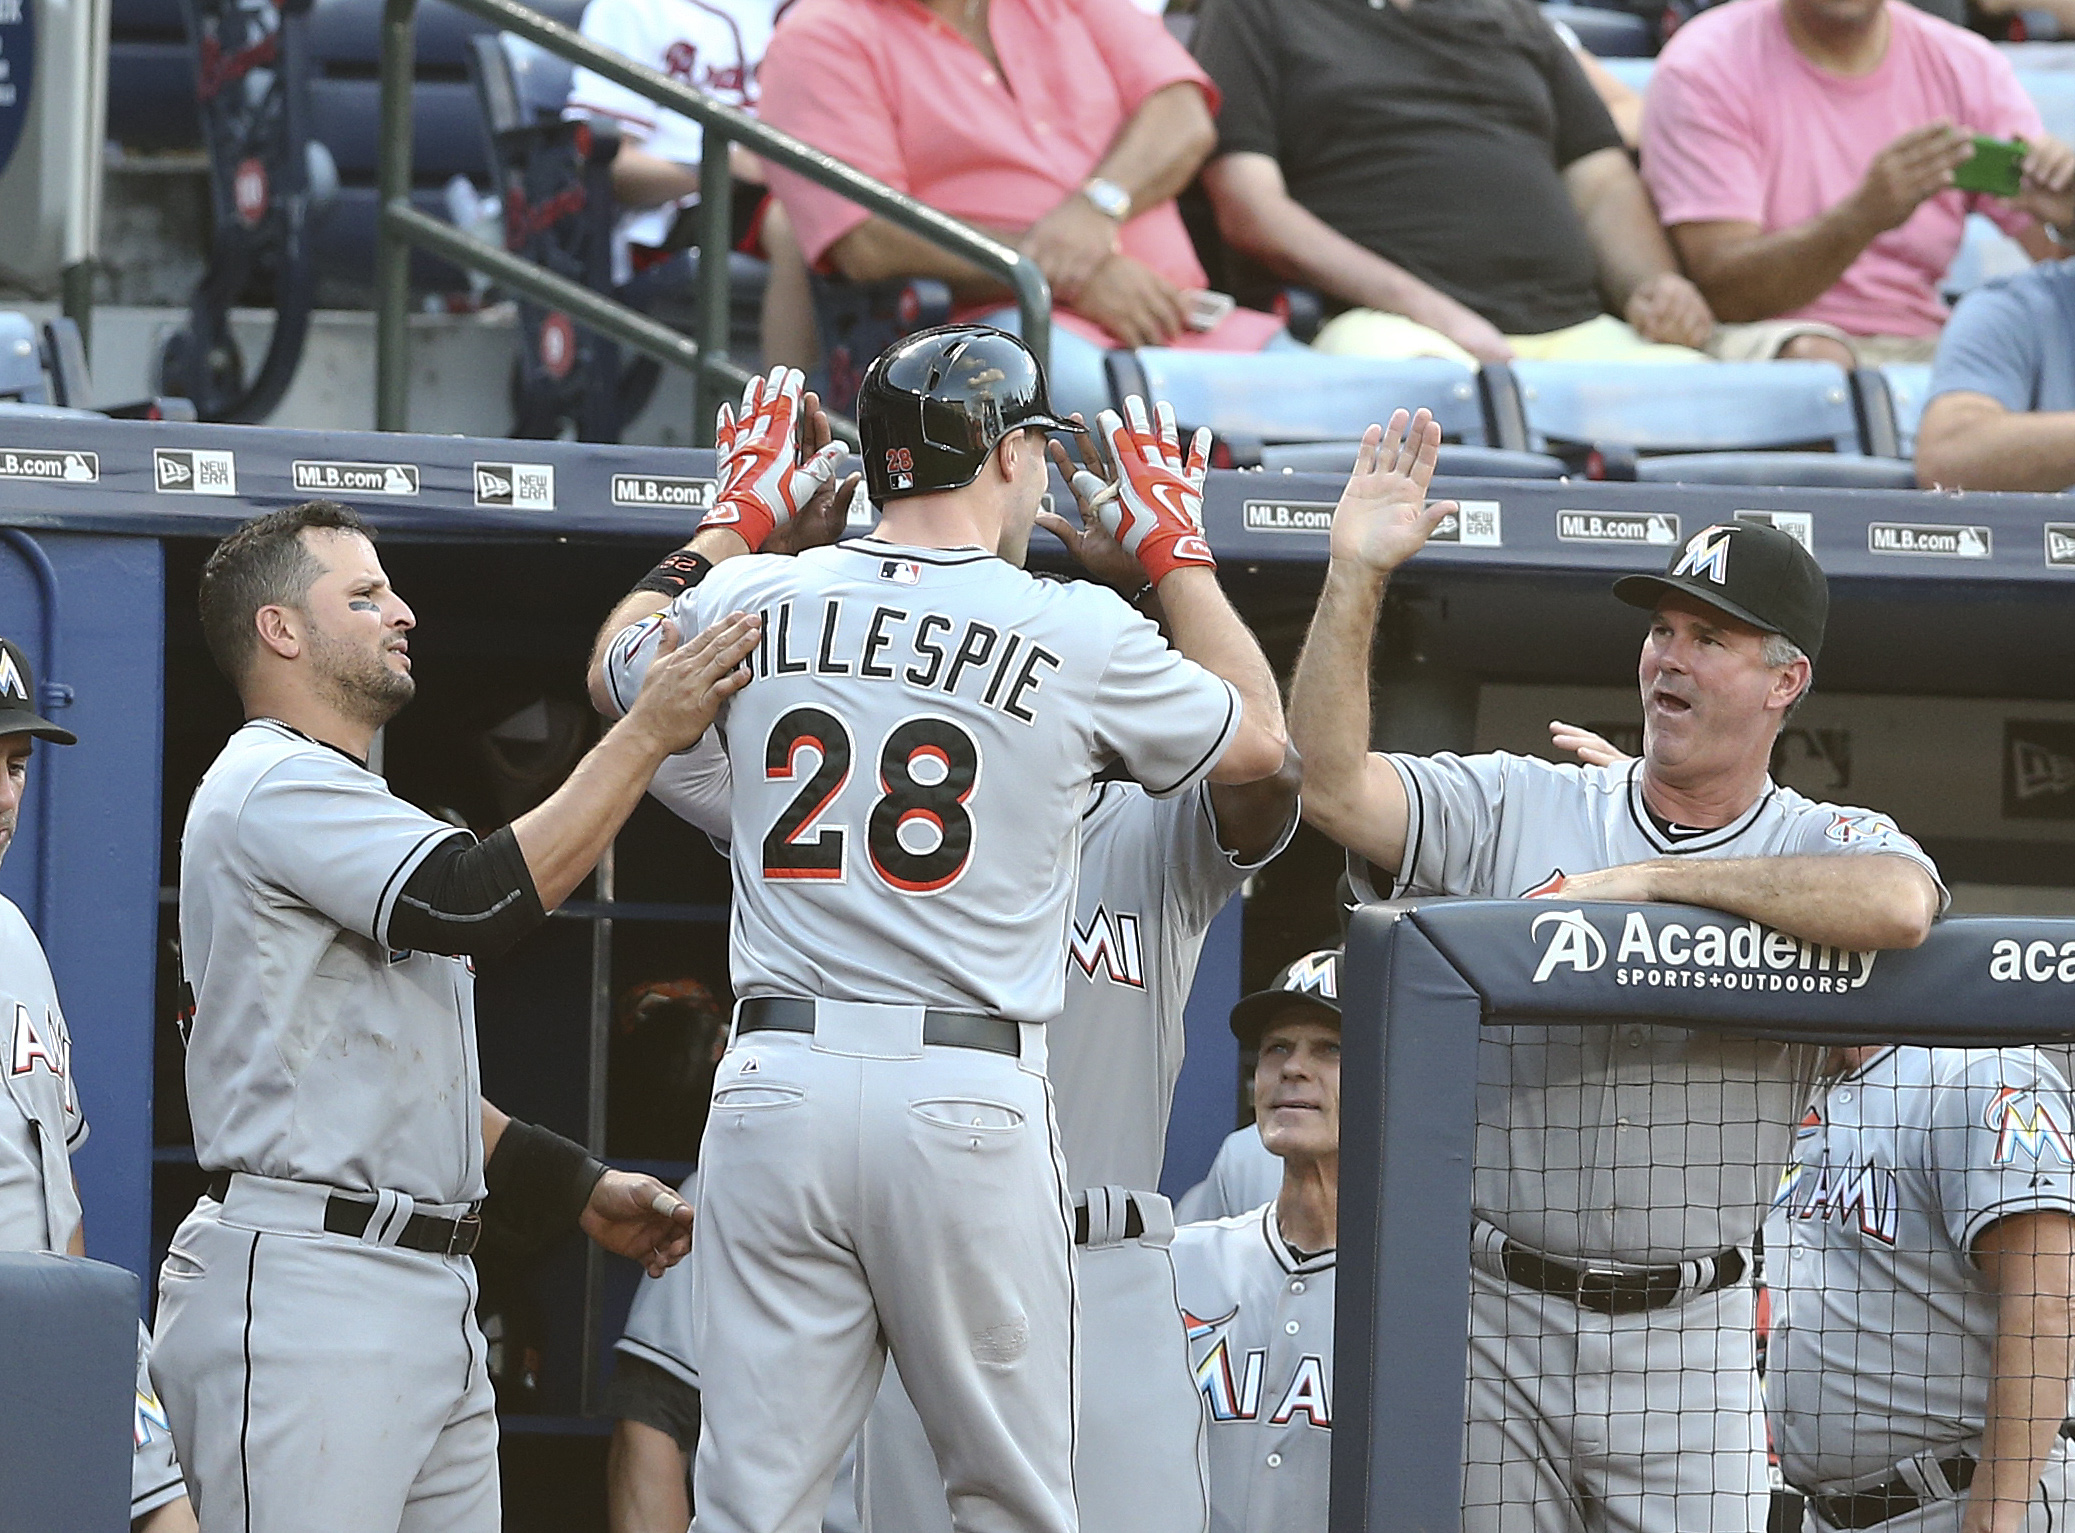 Miami Marlins center fielder Cole Gillespie (28) is greeted at the dugout entrance by Miami Marlins third baseman Martin Prado, left, and manager Dan Jennings after hitting a solo home run in the second inning of a baseball game against the Atlanta Braves